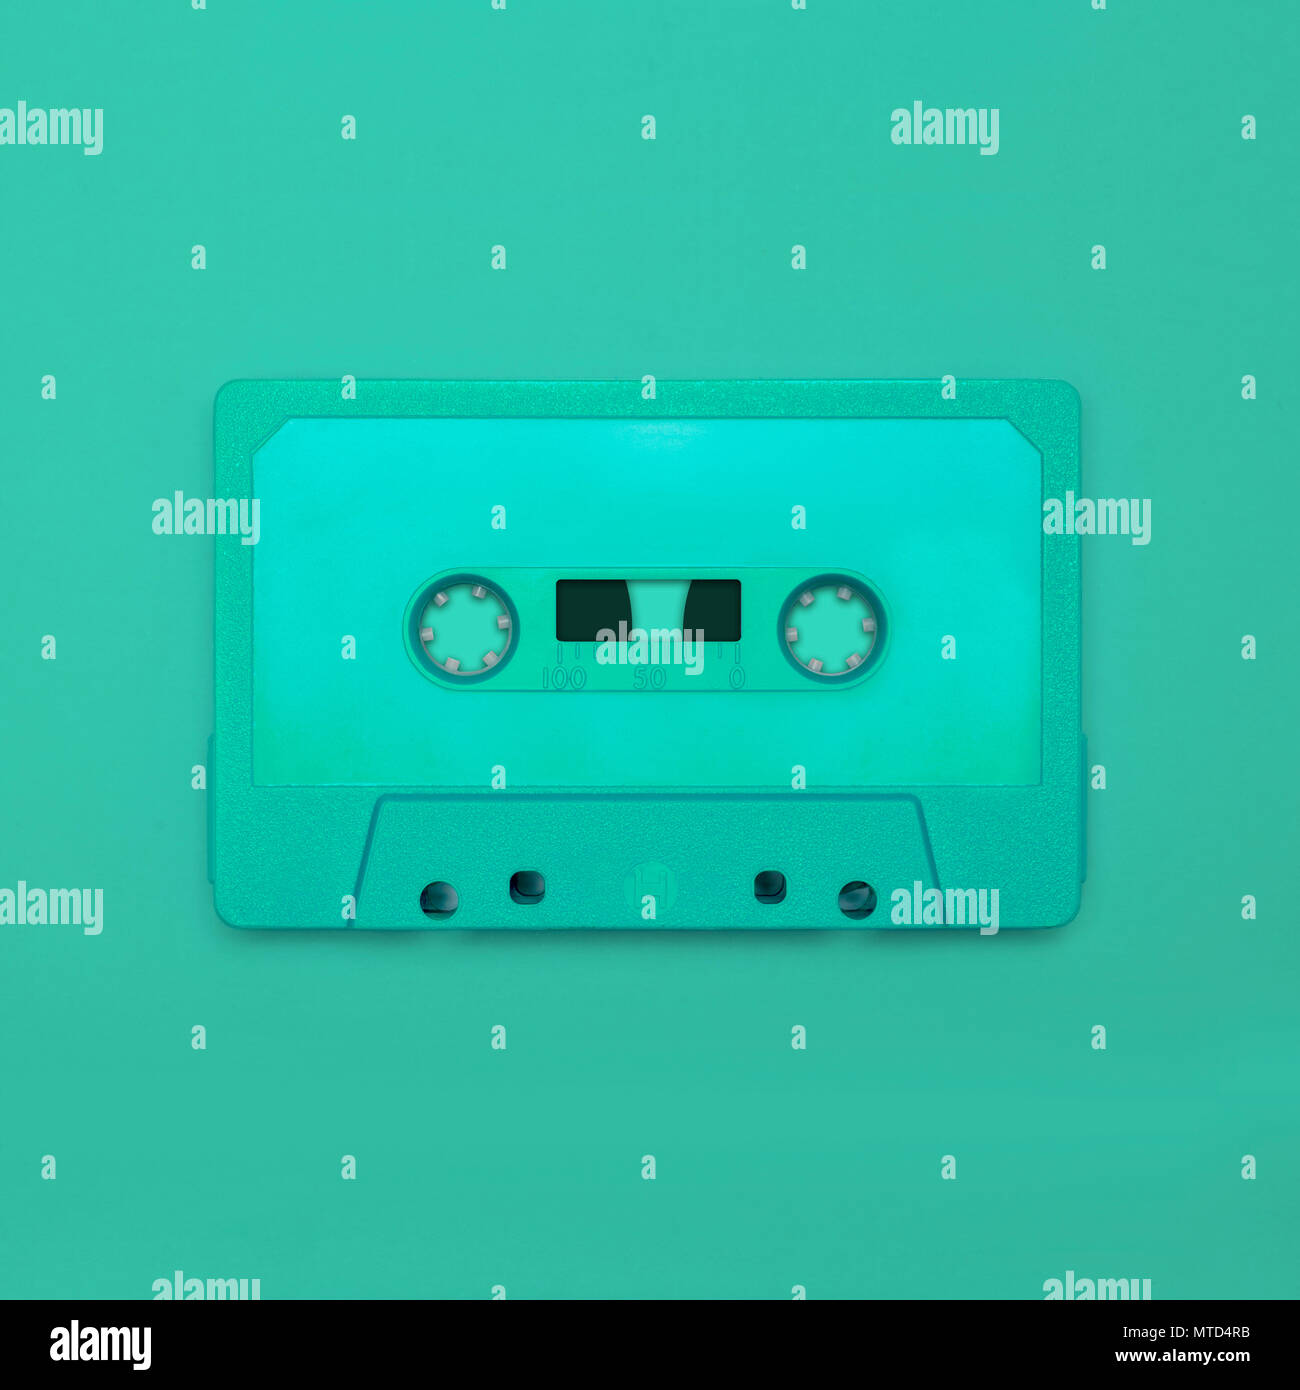 Cassette tape close up, blank for customisation of label; obsolete music technology for nostalgic creative design web & print - Stock Image